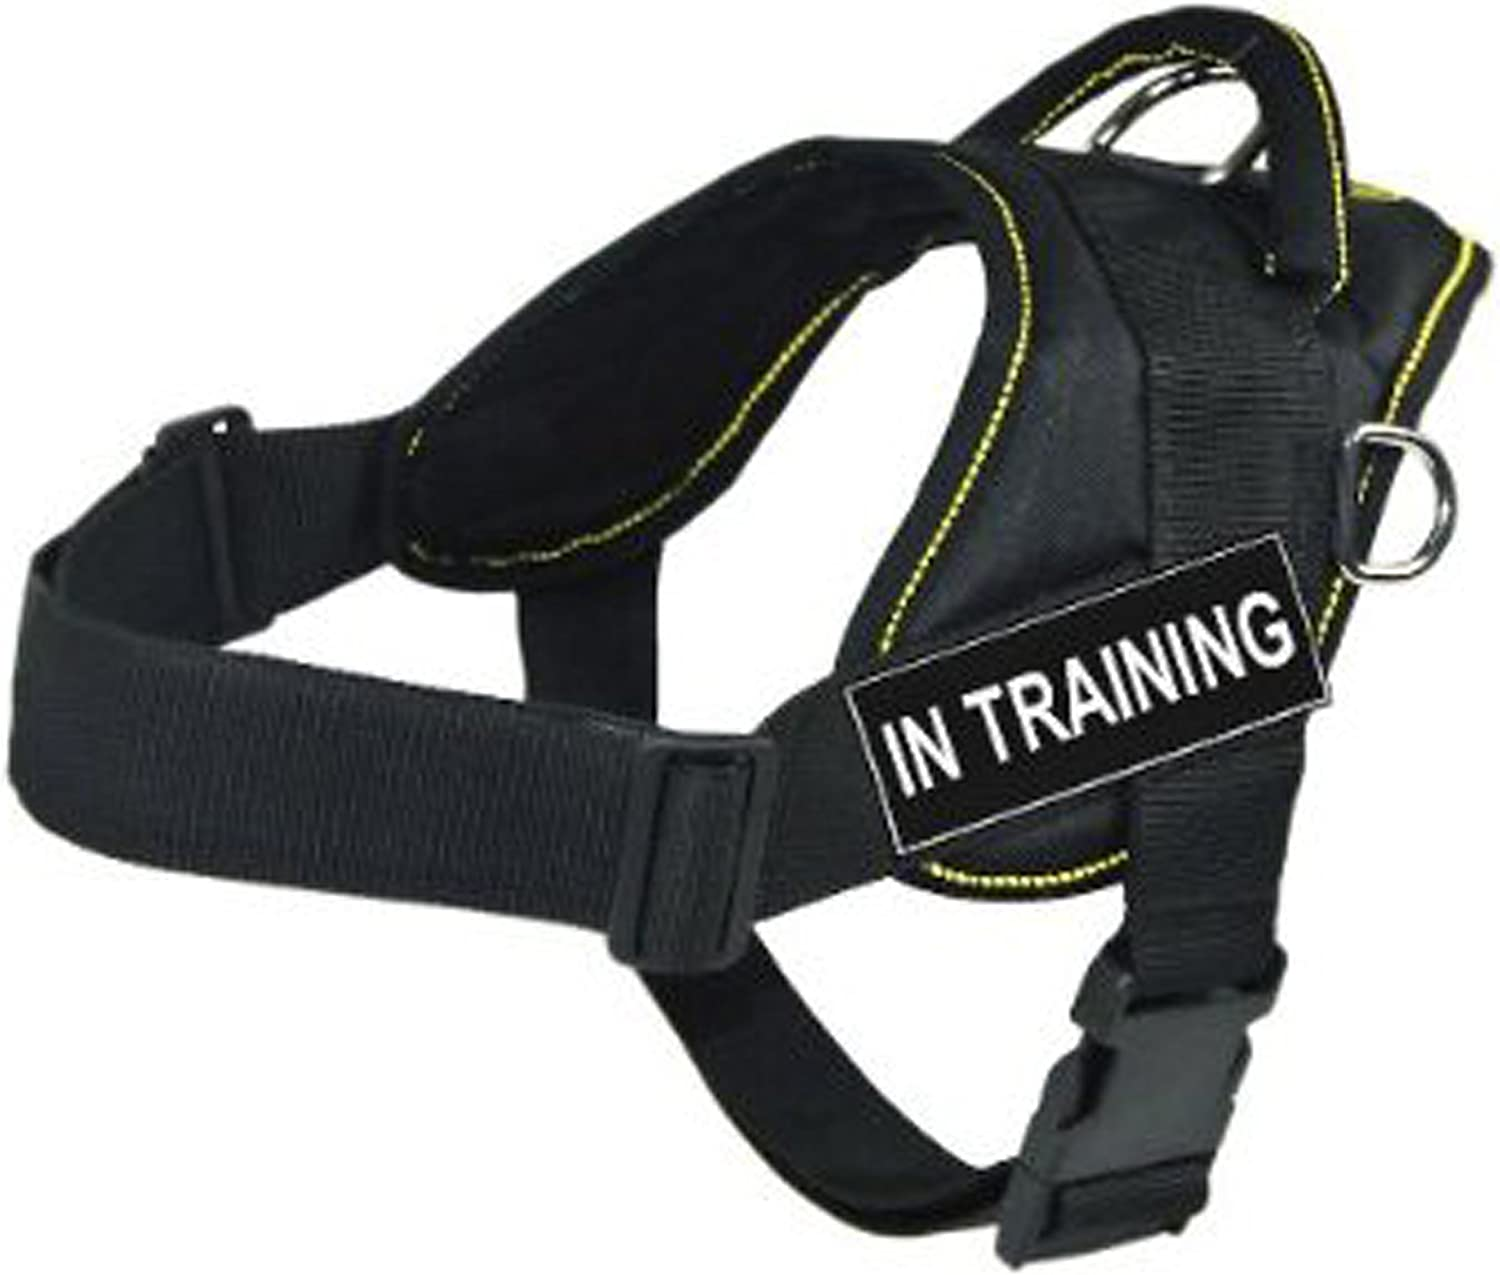 Dean & Tyler DT Fun Works Harness, In Training, Black with Yellow Trim, XLarge  Fits Girth Size  34Inch to 47Inch